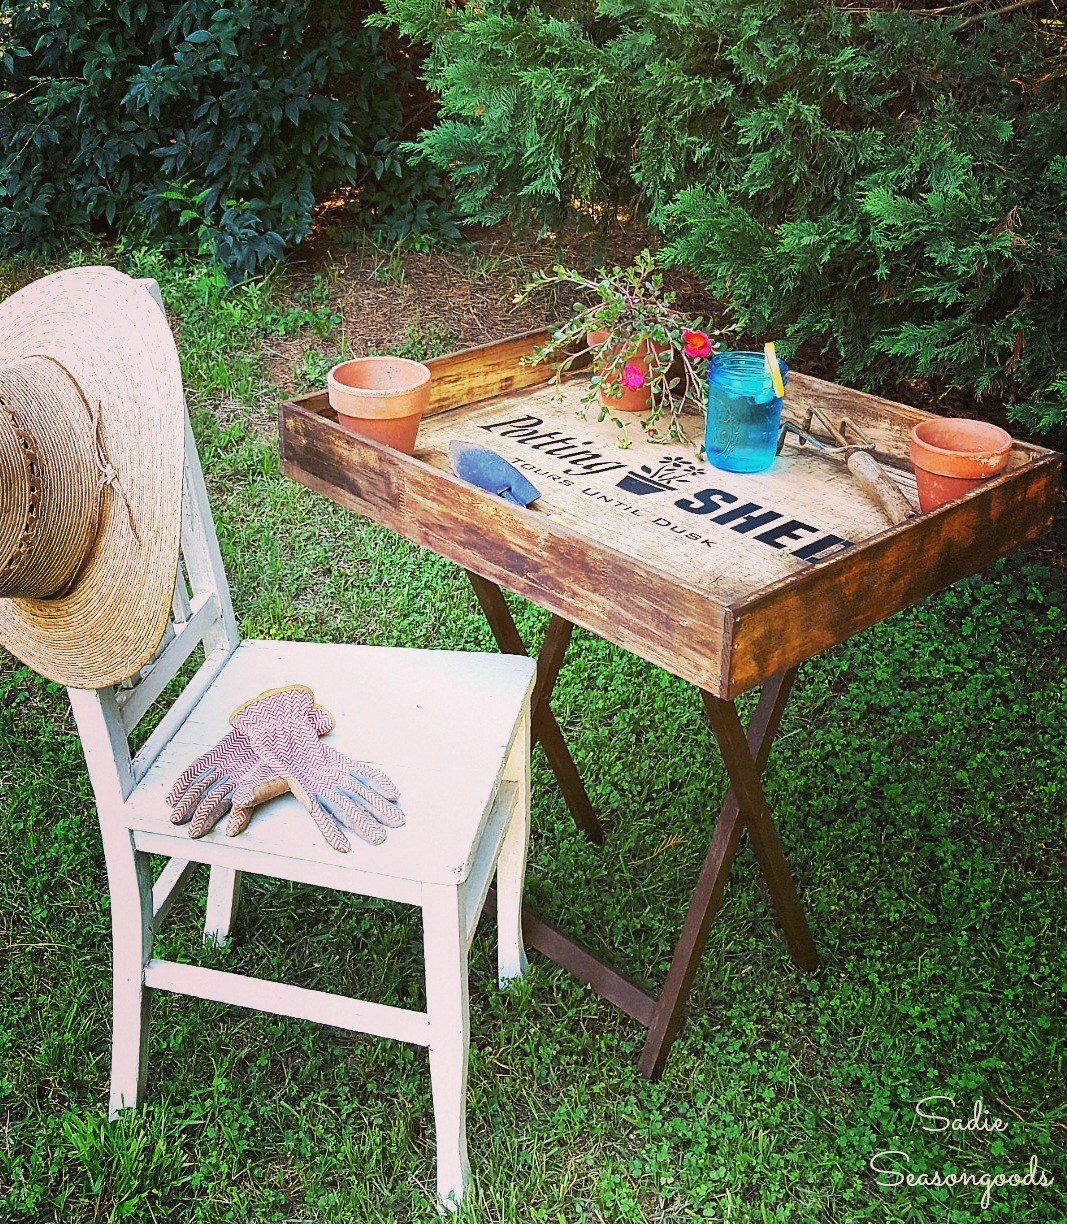 Up-cycled drawer portable potting bench, by Sadie Seasongoods, featured on Funky Junk Interiors